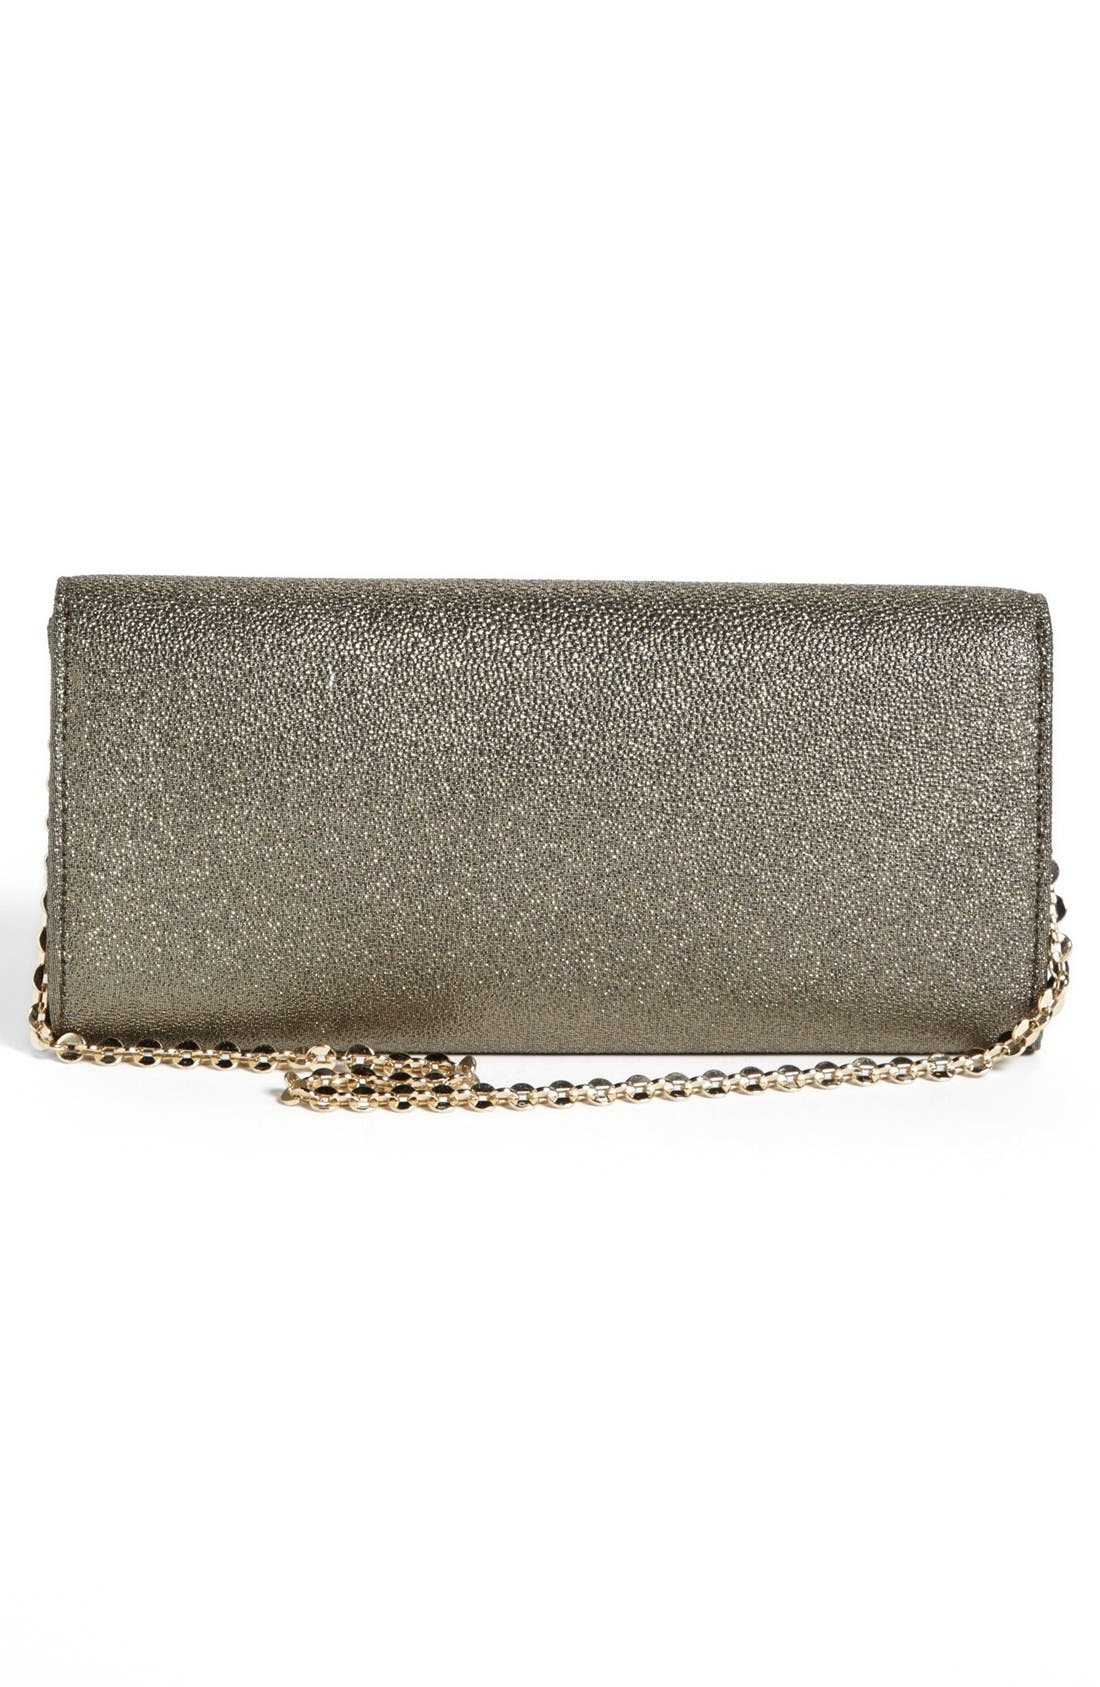 Alternate Image 3  - Ivanka Trump Metallic Clutch